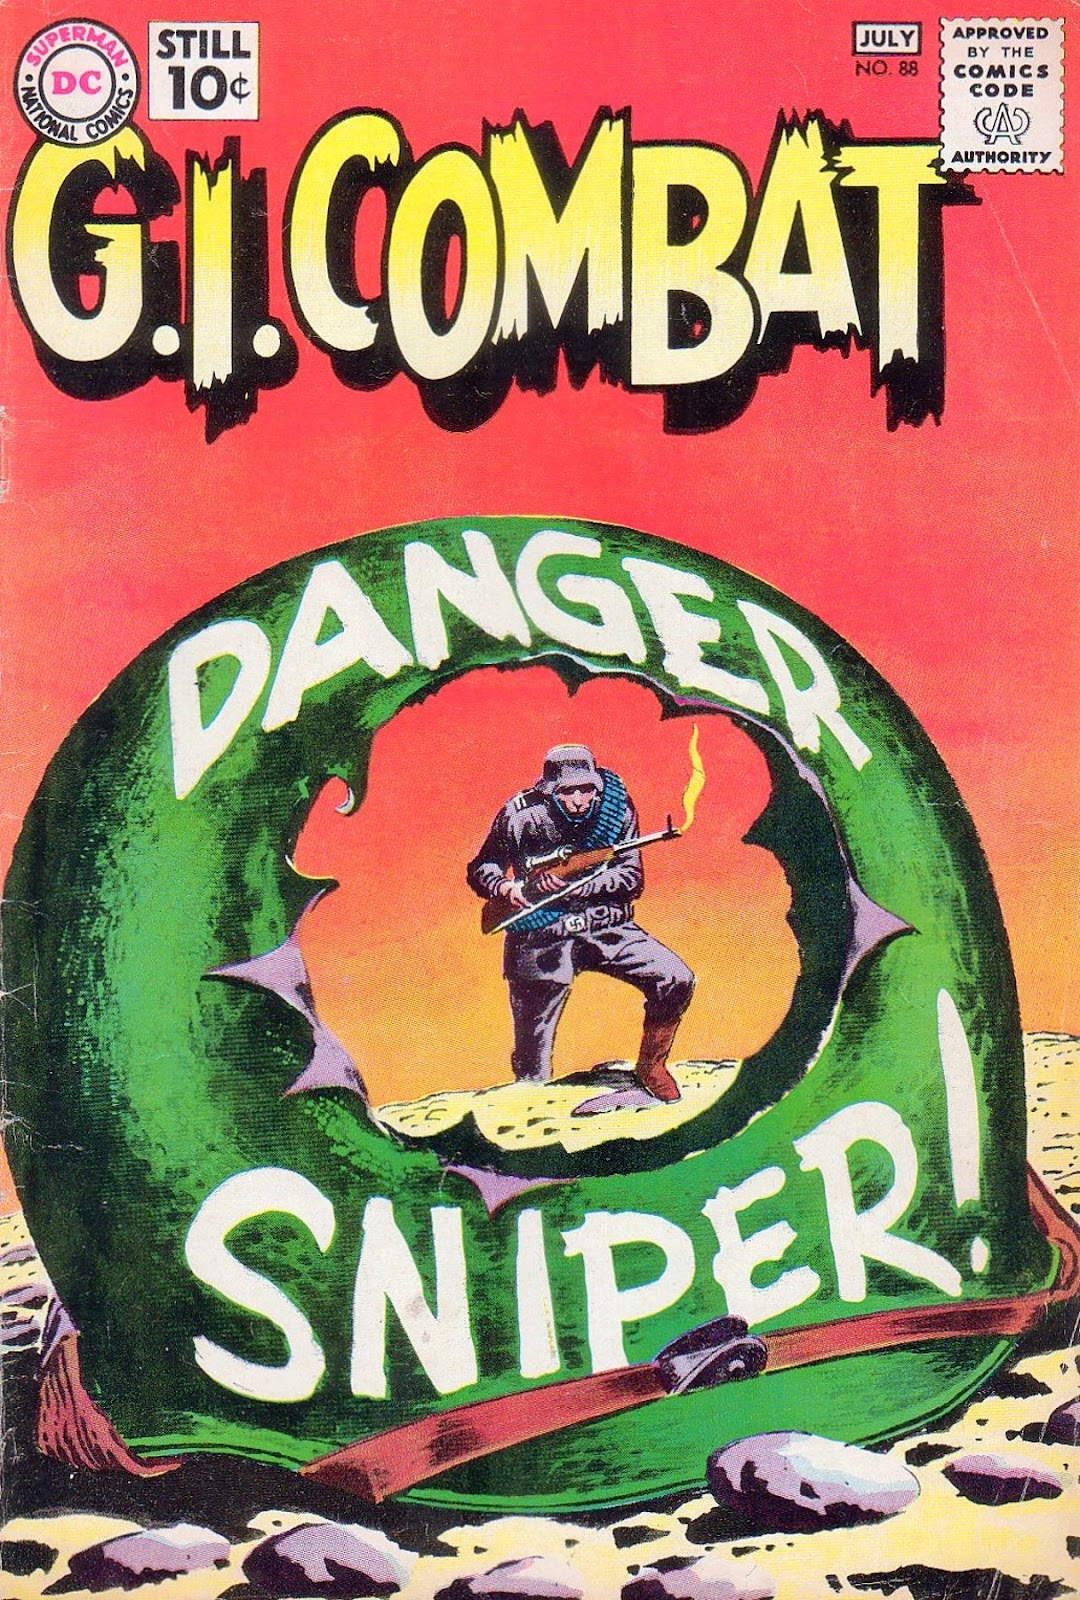 G.I. Combat (1952) issue 88 - Page 1